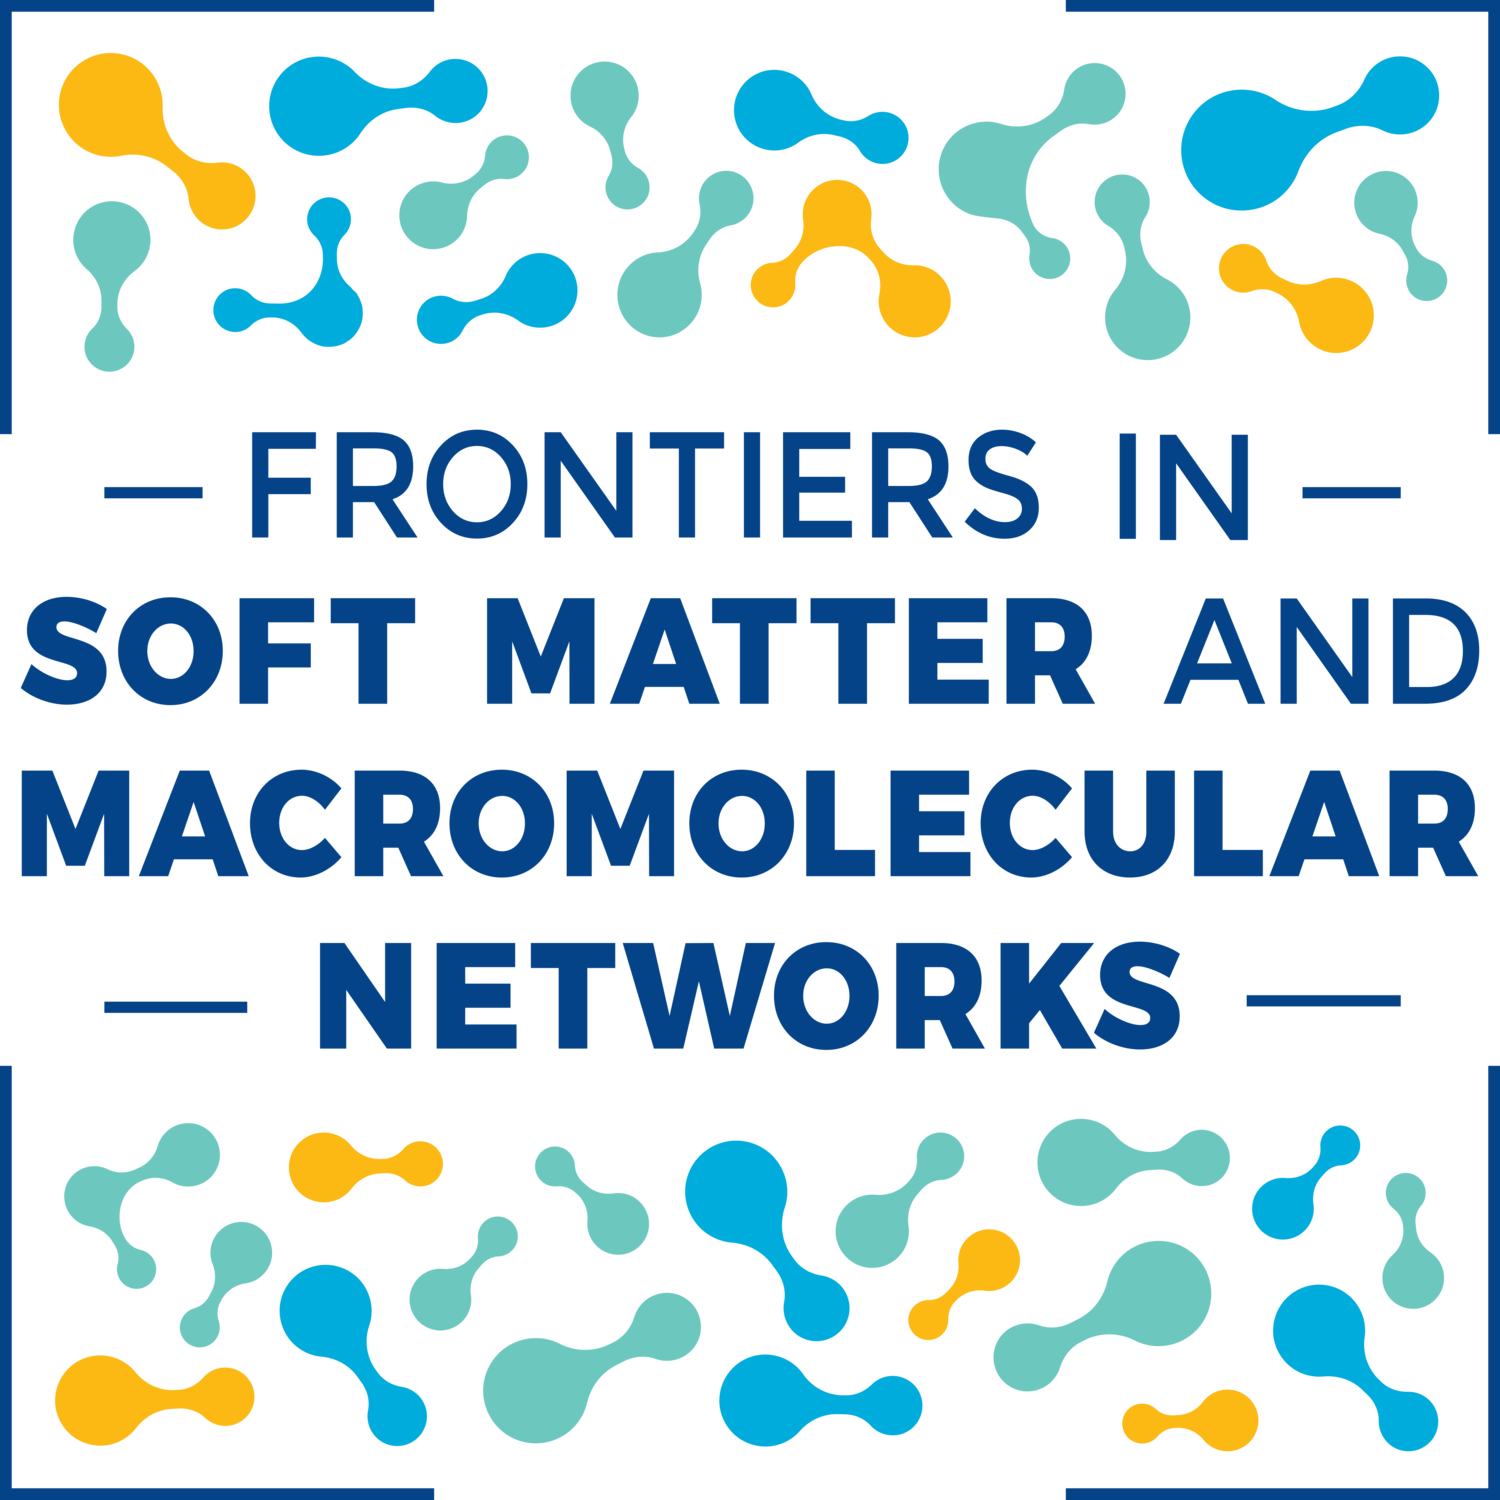 Frontiers in Soft Matter and Macromolecular Networks